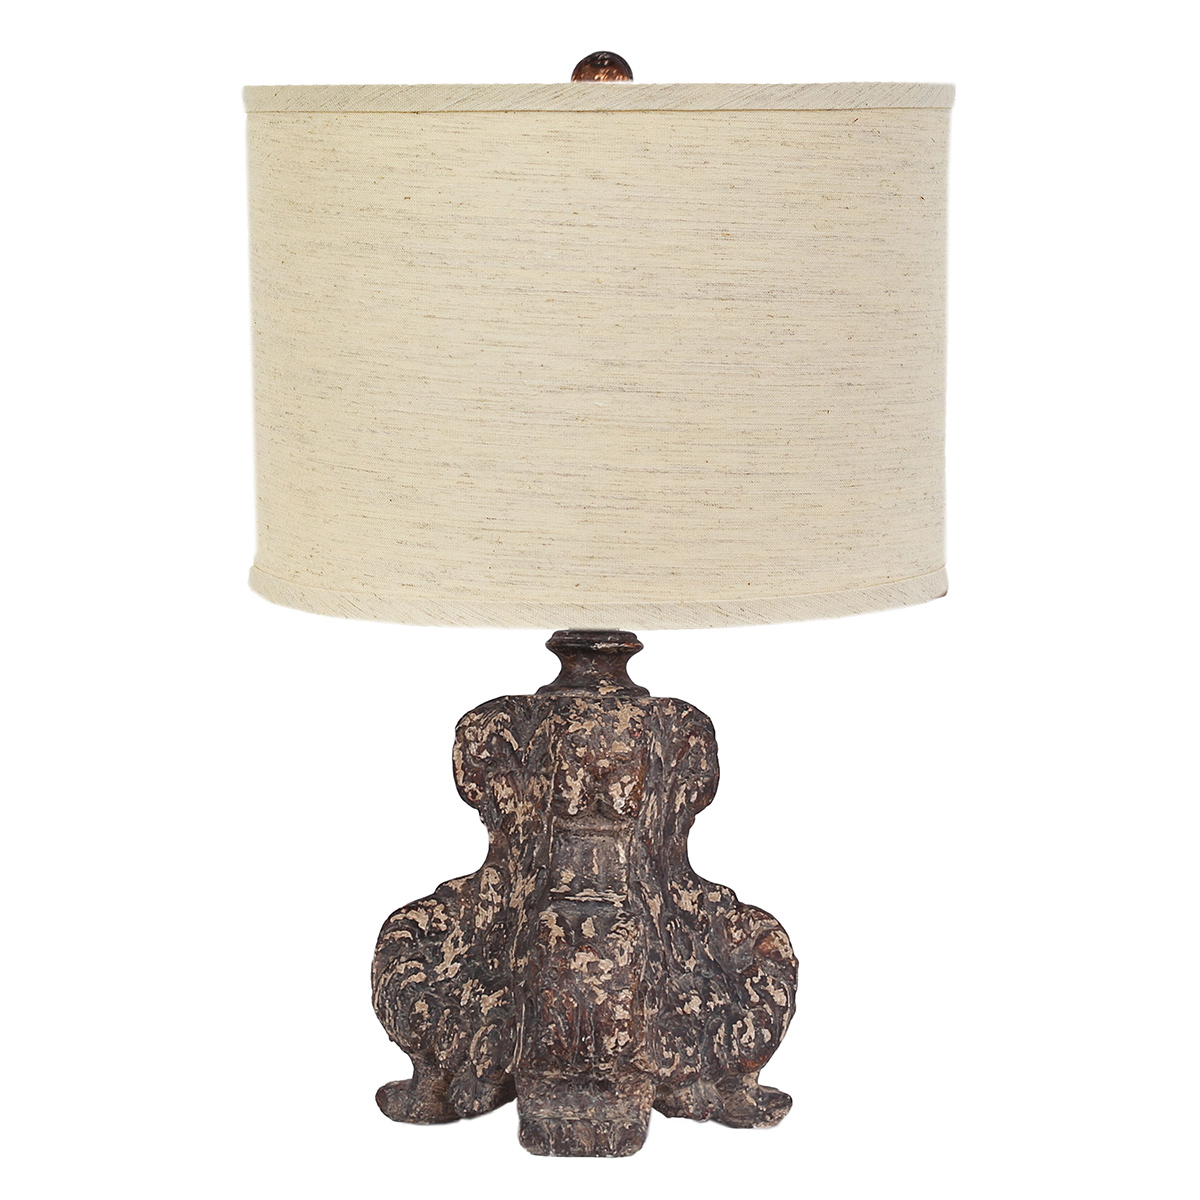 Antiqued Brown Table Lamp